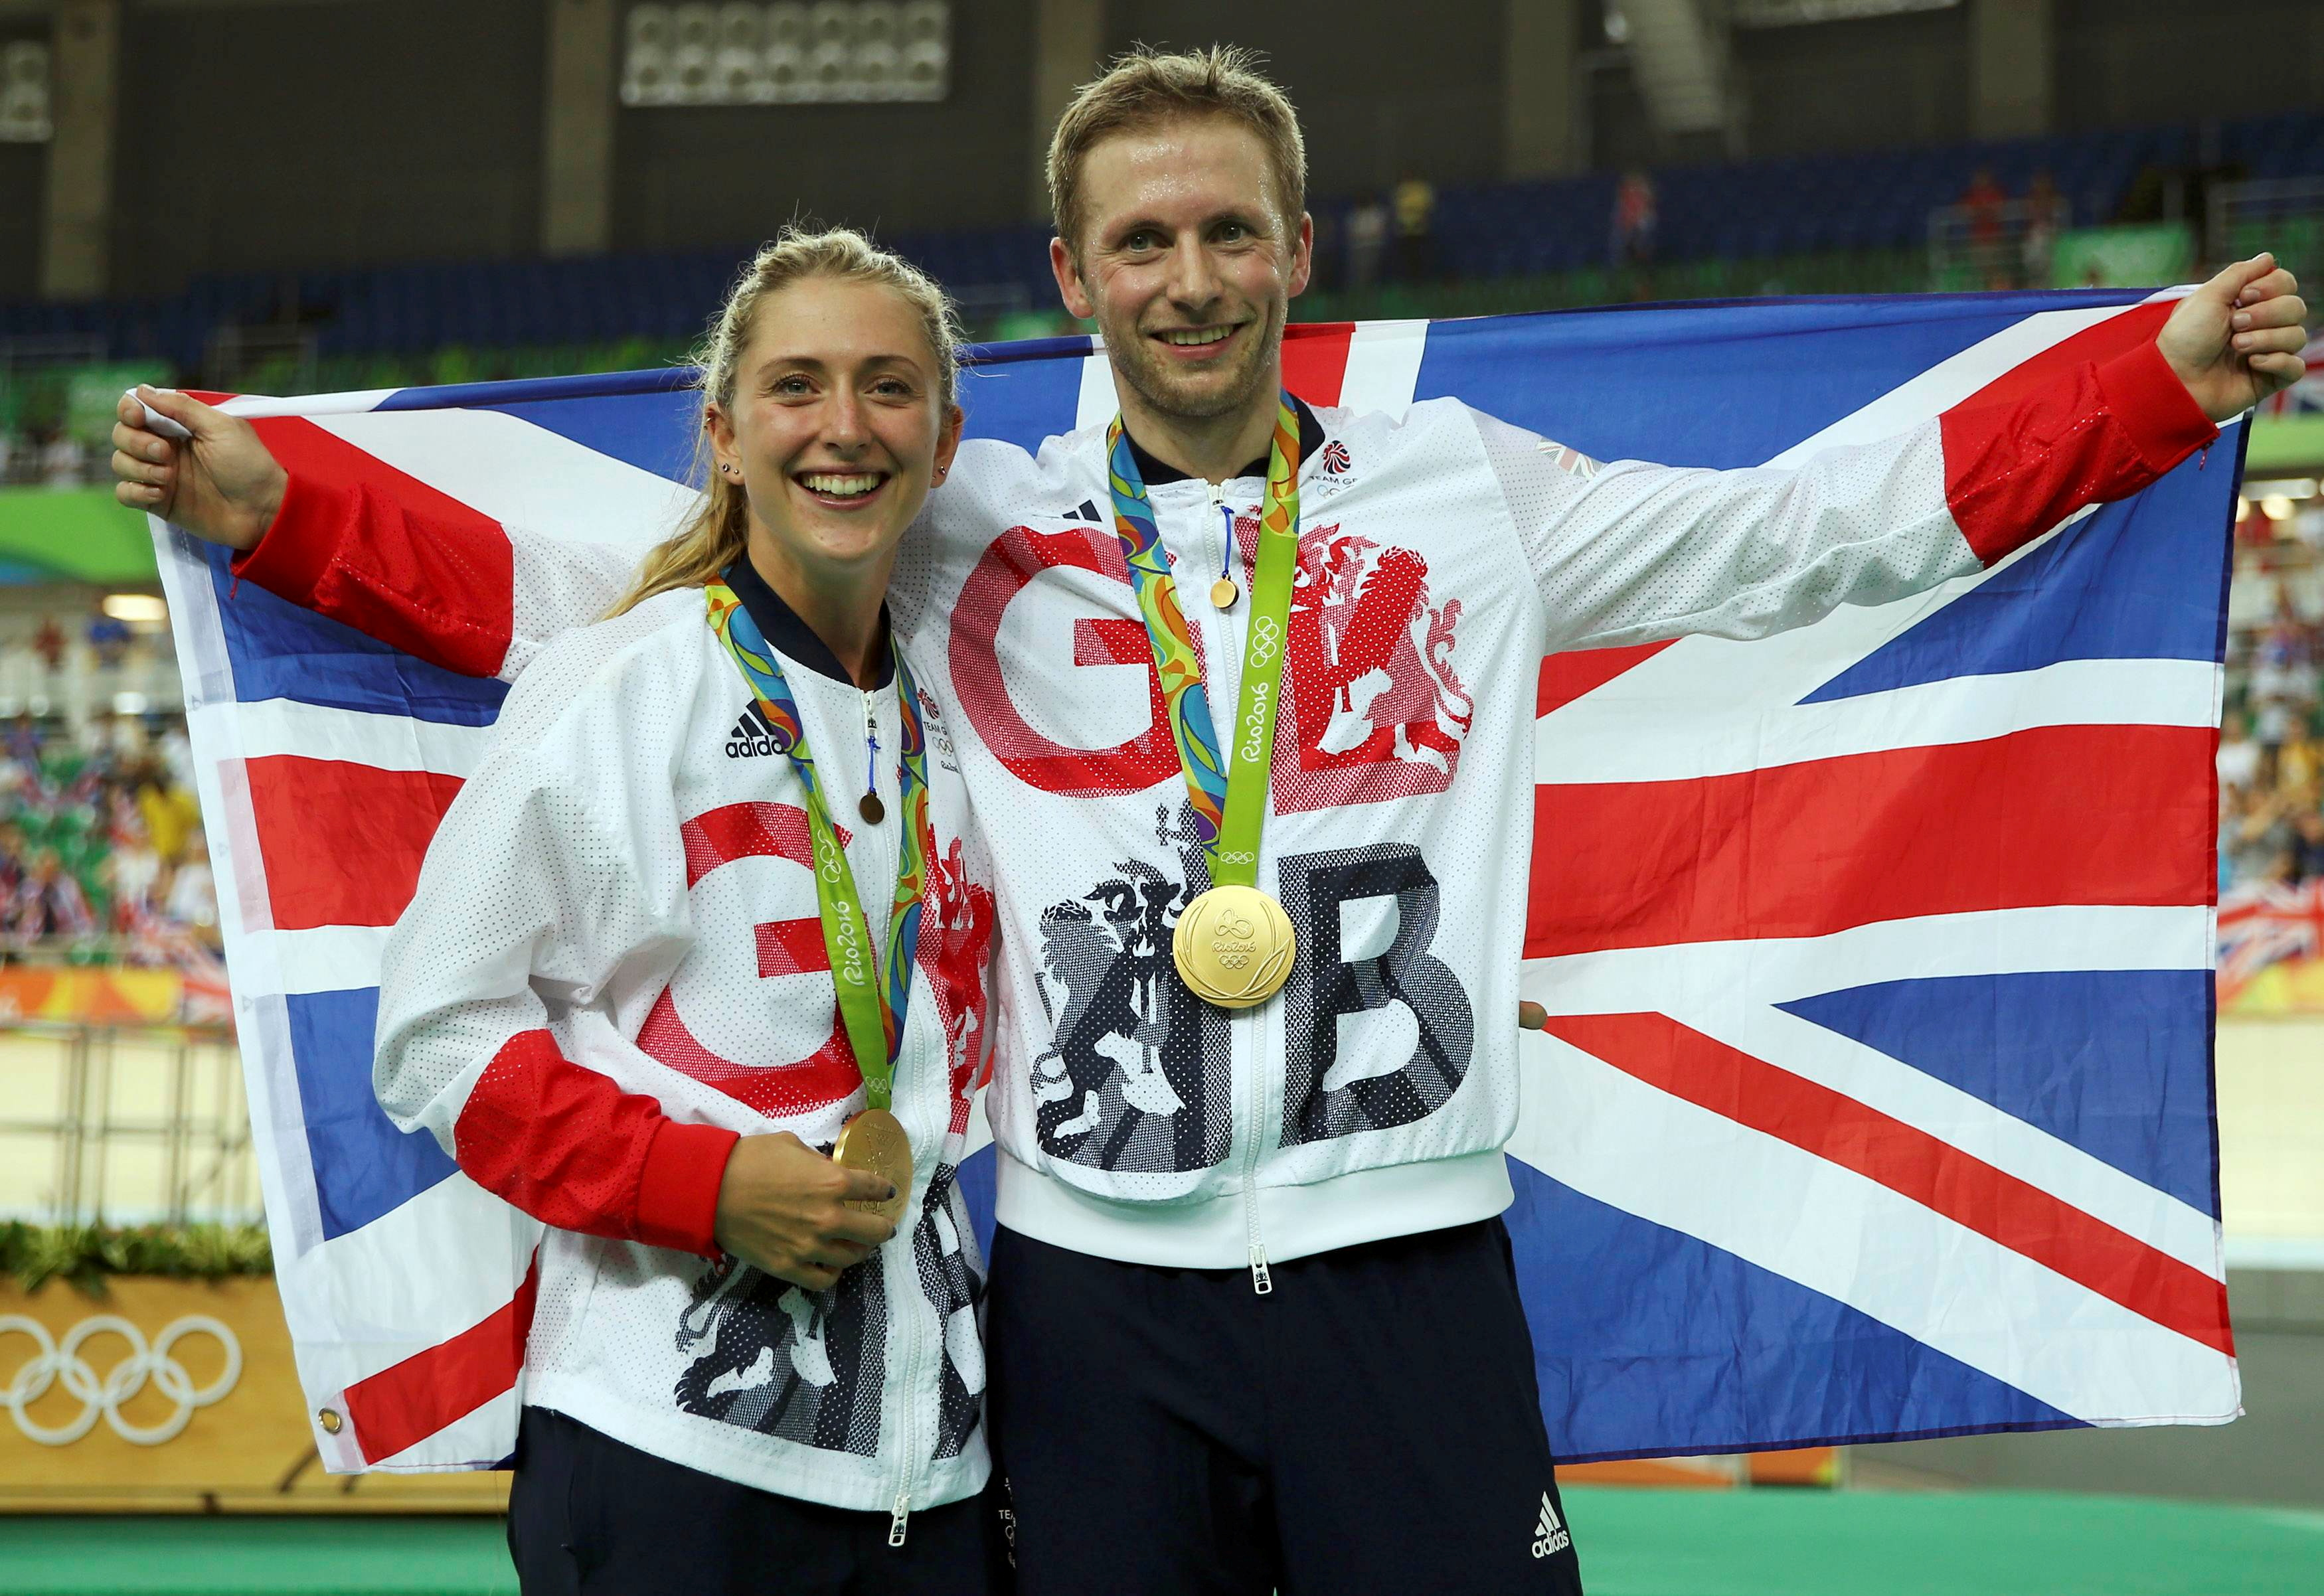 2016 Rio Olympics - Cycling Track - Victory Ceremony - Men's Keirin Victory Ceremony - Rio Olympic Velodrome - Rio de Janeiro, Brazil - 16/08/2016. Gold medalist Jason Kenny (GBR) of Britain poses with his gilfriend, women's omnium gold medalist Laura Trott (GBR) of Britain.   REUTERS/Matthew Childs FOR EDITORIAL USE ONLY. NOT FOR SALE FOR MARKETING OR ADVERTISING CAMPAIGNS./File Photo